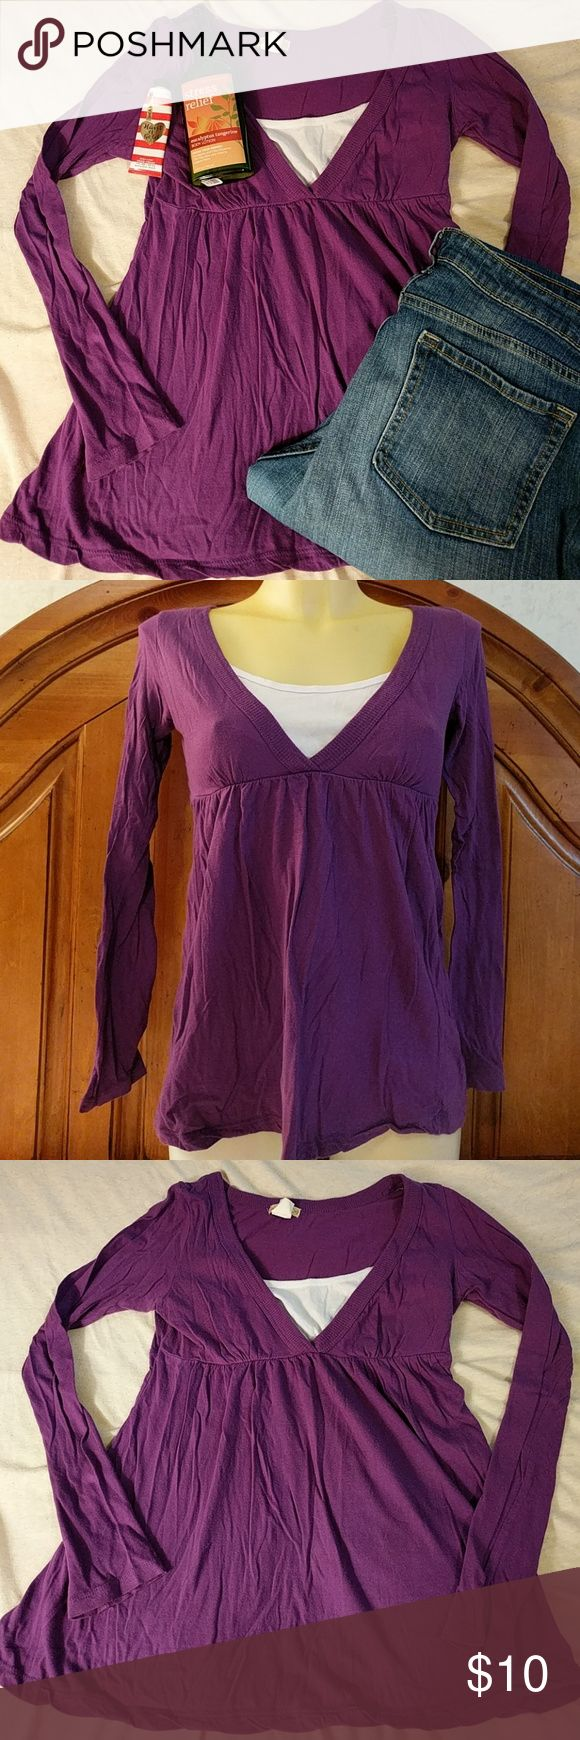 🐨Purple Babydoll Top ✔️Z. Ro brand ✔️Size S ✔️White undershirt is sewn in ✔️Like new ✔️Empire waist - elastic under bust ✔️Flowy bottom ✔️💯% Cotton  ☀️Bust - 15 inches ☀️Length - 23 inches ☀️Sleeve - 23 inches ☀️Waist - 22 inches  🚭 Smoke free but pet friendly home 🐕🐈 👍 Open to reasonable offers ❗ ❌Offers of 30% or more below listed price will not be accepted Z. Ro Tops Blouses